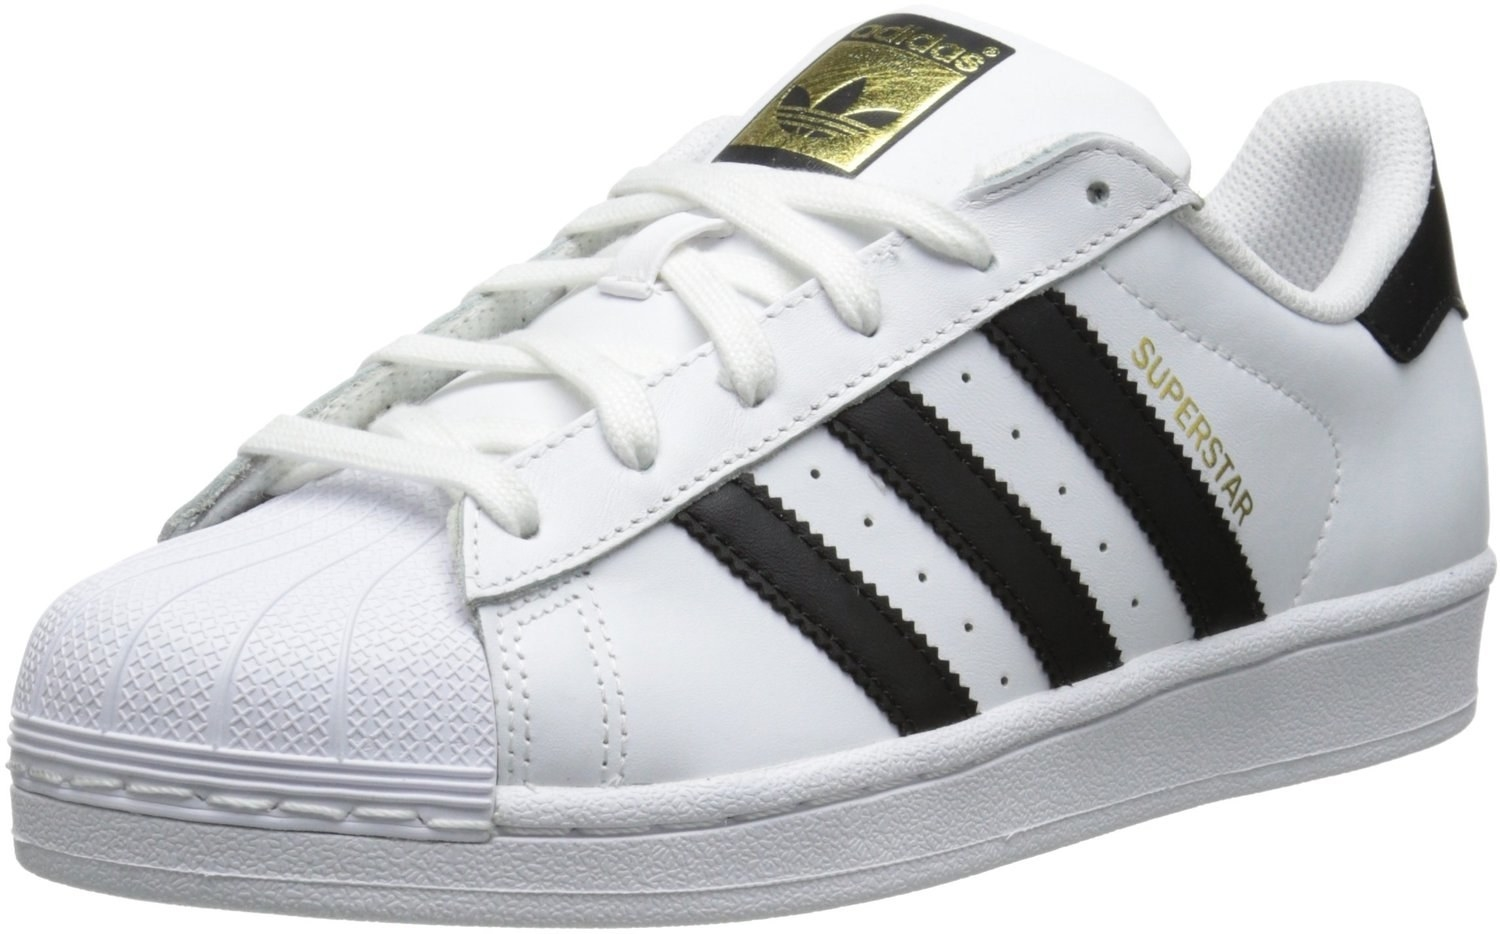 These Adidas Superstars that are comfy and go with anything.